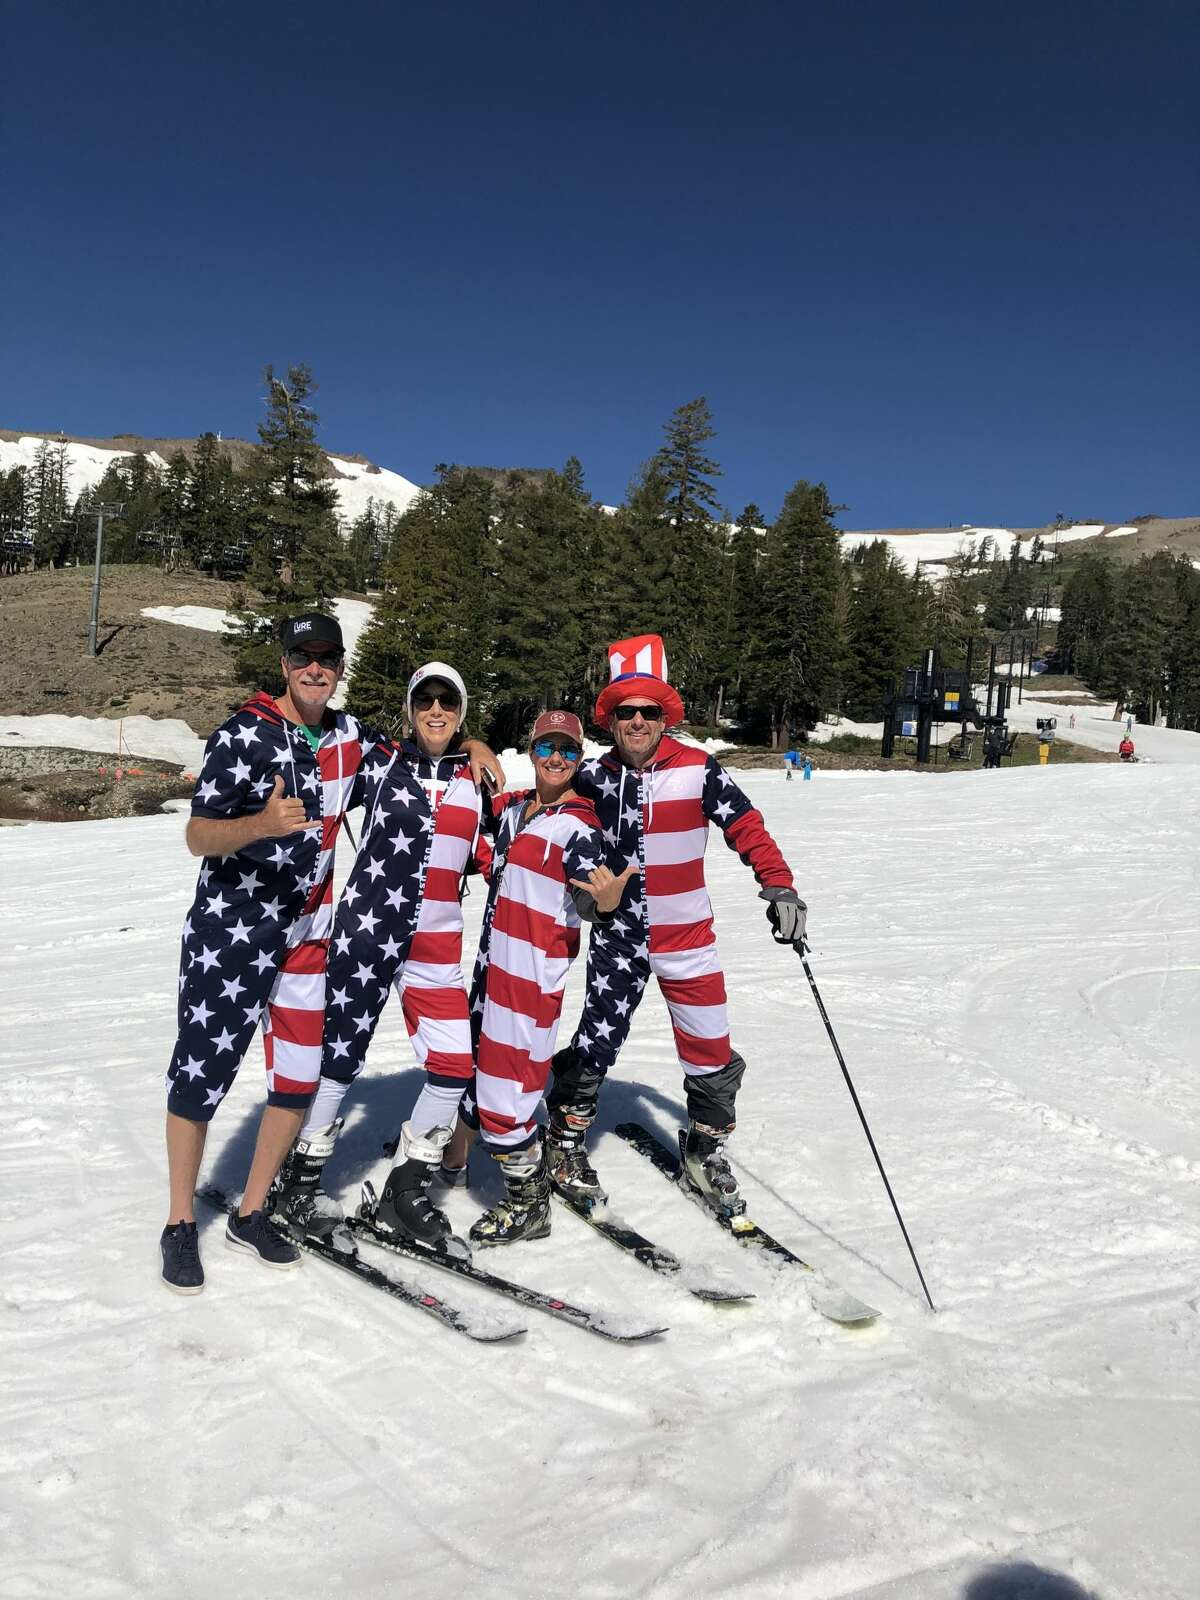 After its third-snowiest season on record, Squaw Valley still had slopes open for skiing on July 4, 2019.